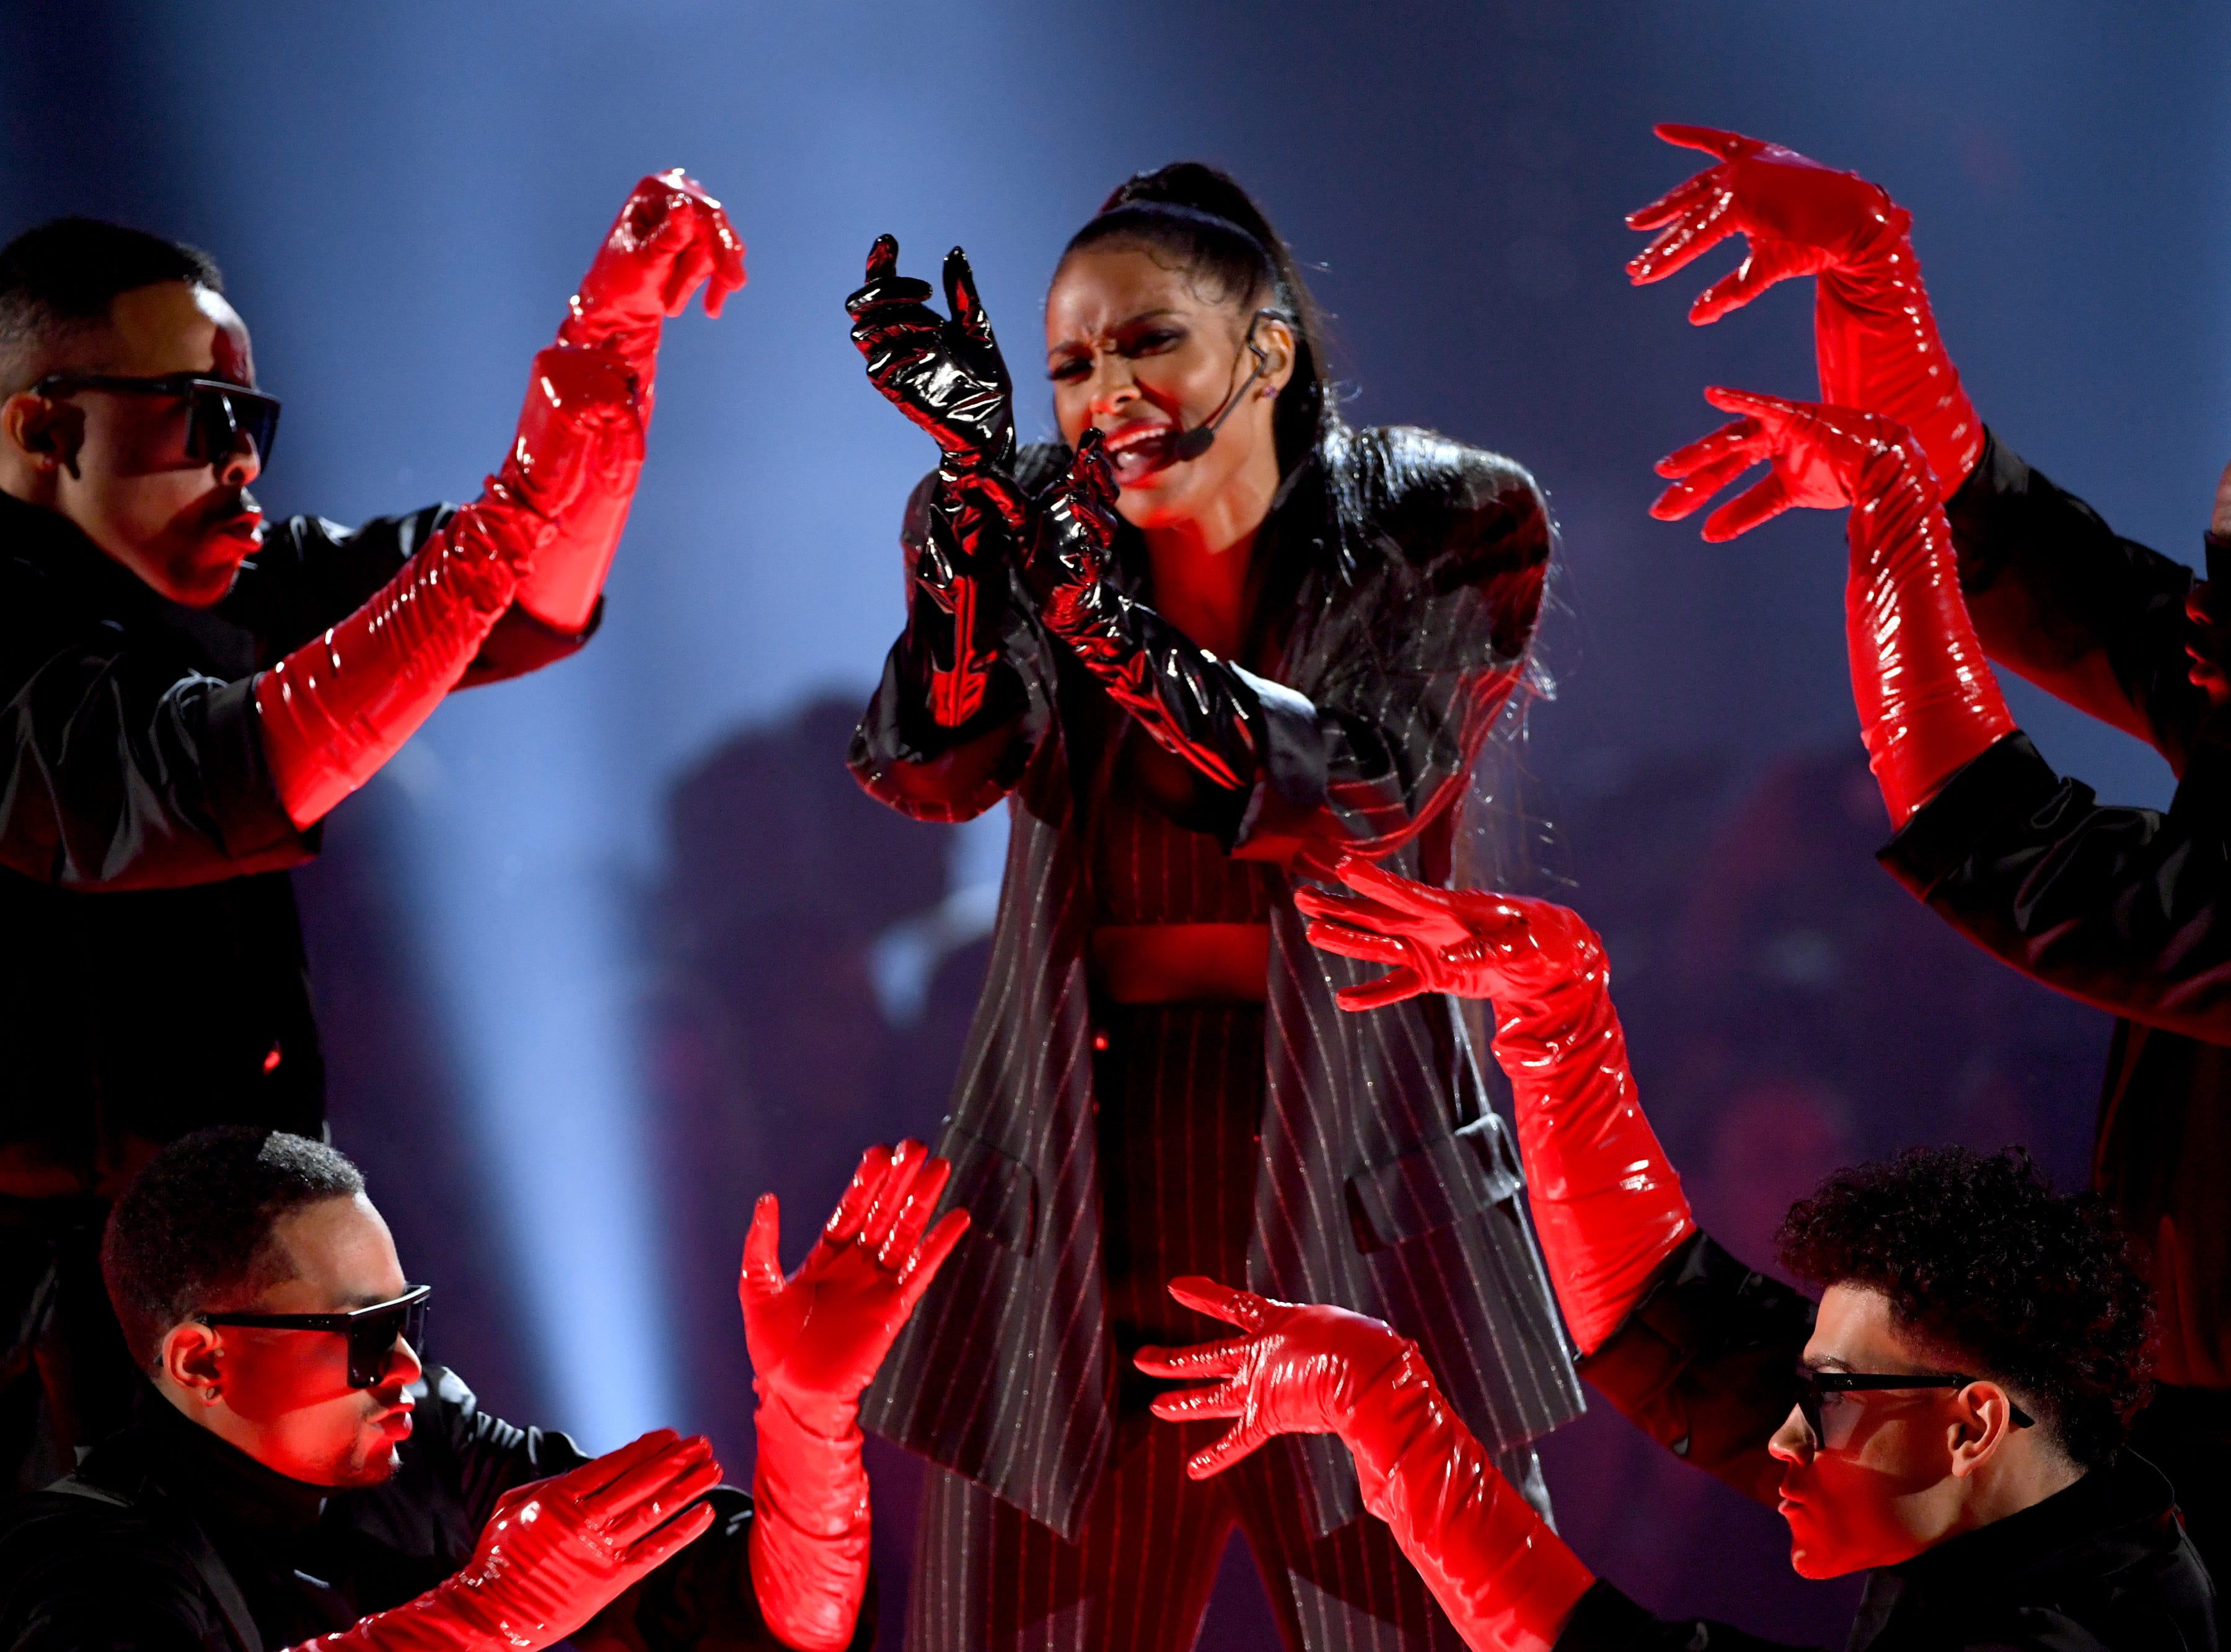 Ciara (C) performs onstage during the 2019 Billboard Music Awards at MGM Grand Garden Arena on May 01, 2019 in Las Vegas, Nevada.